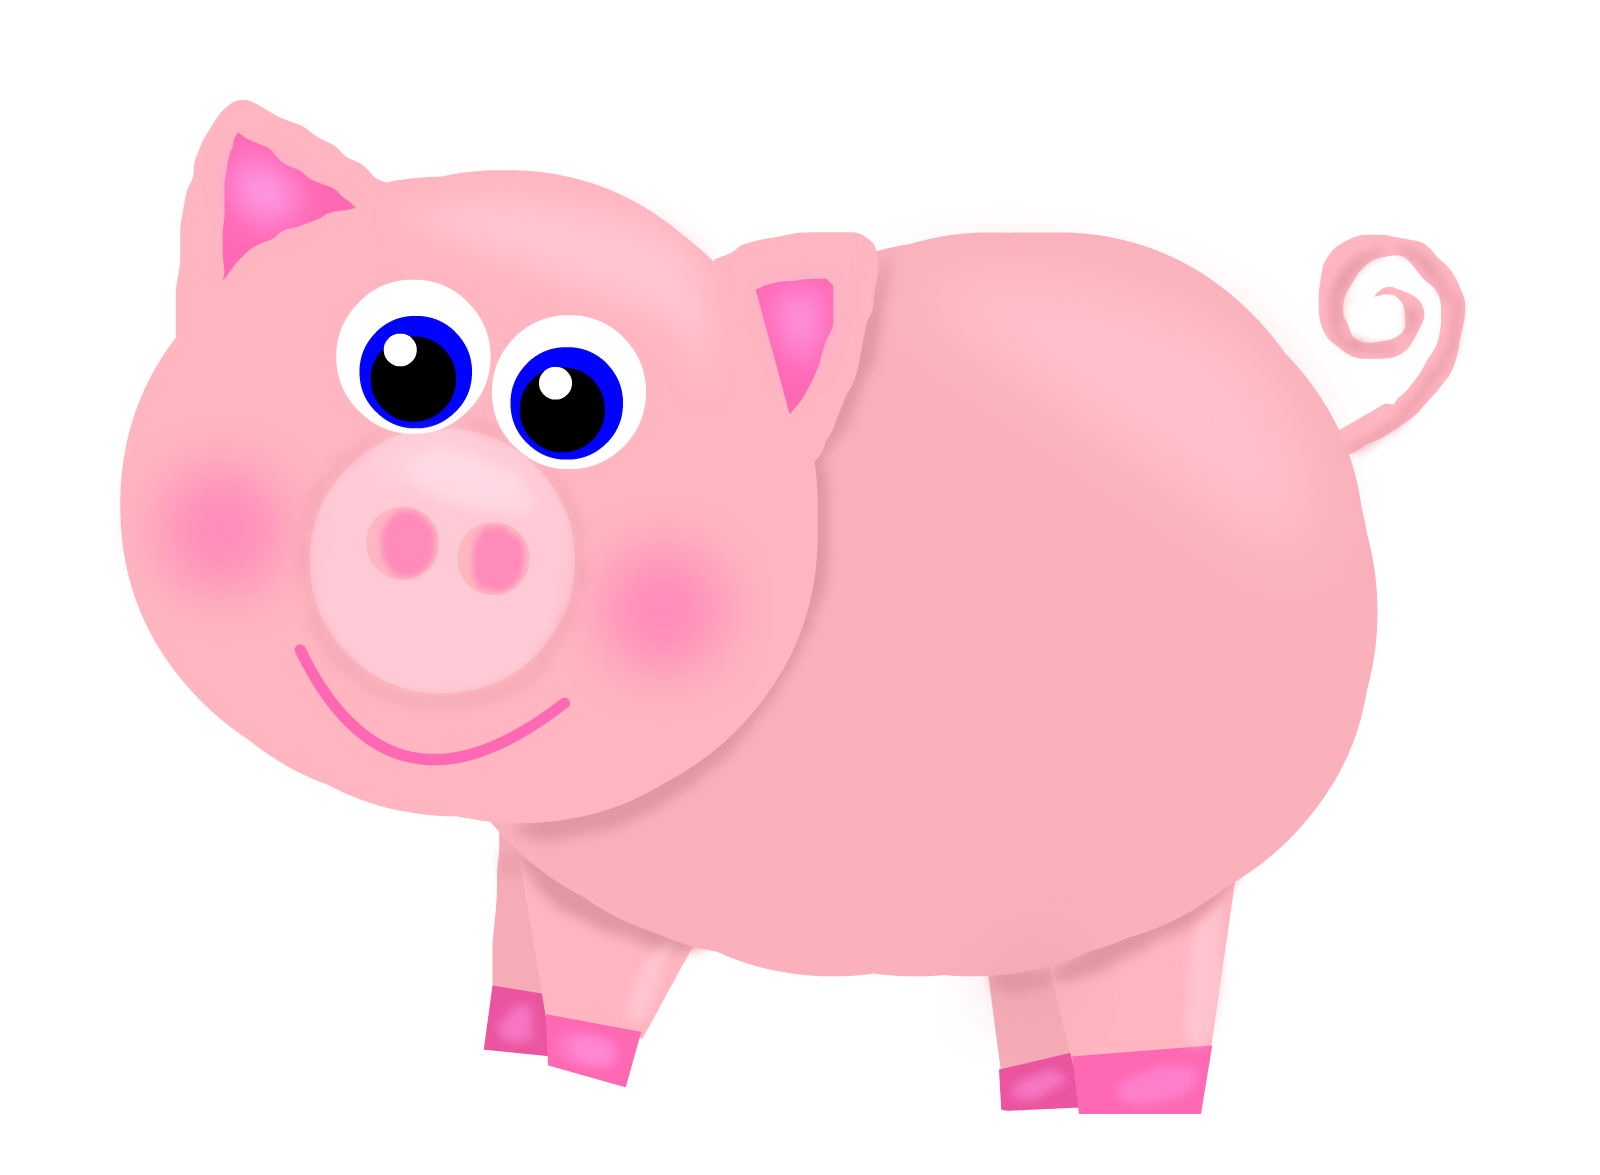 Pigs clipart body. Free pink pig cliparts